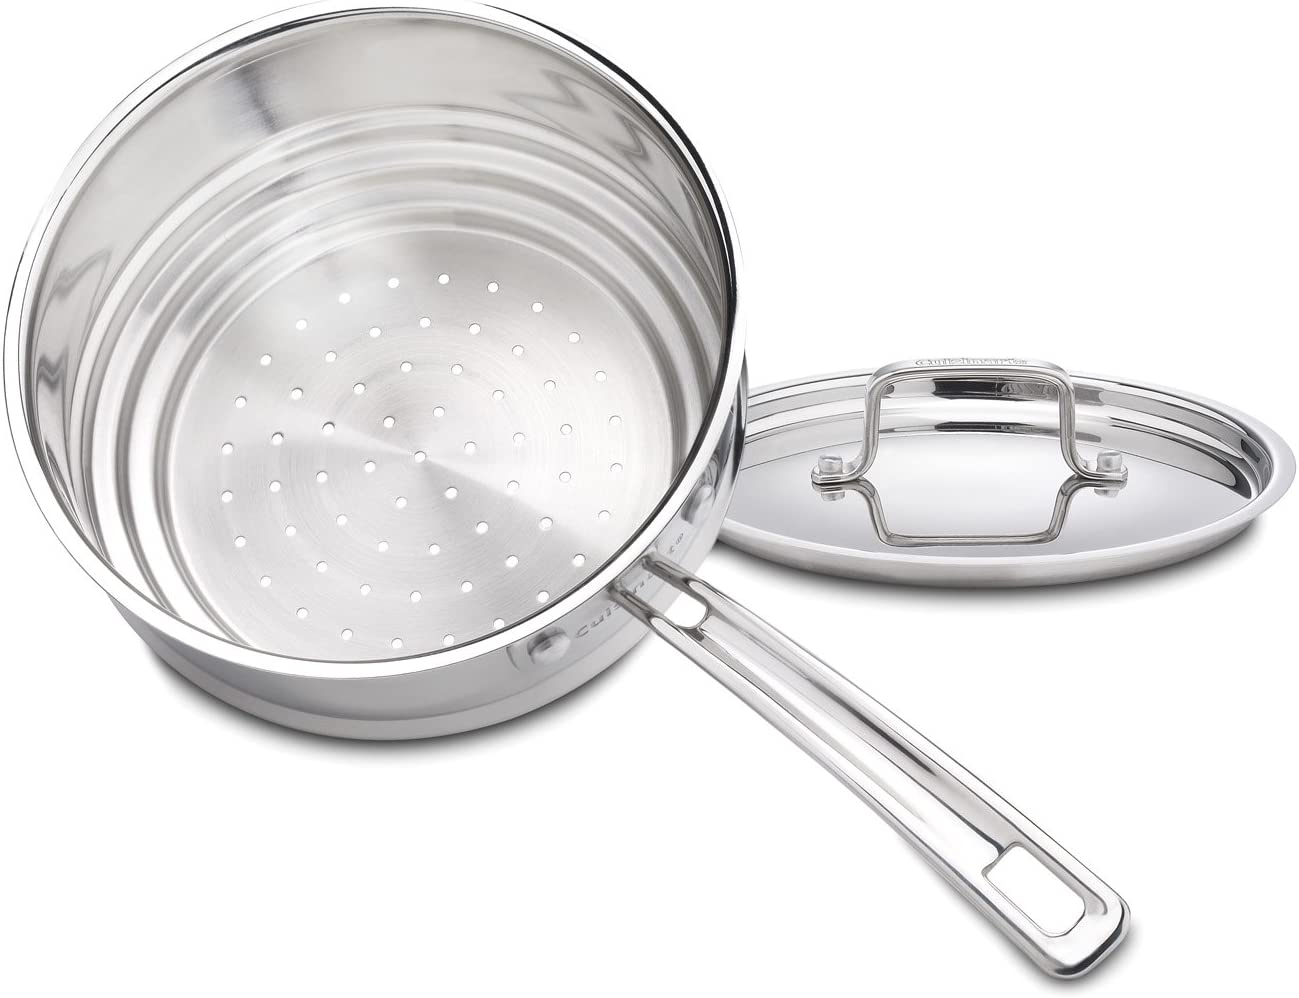 Cuisinart MultiClad Pro Stainless Universal Steamer with Cover